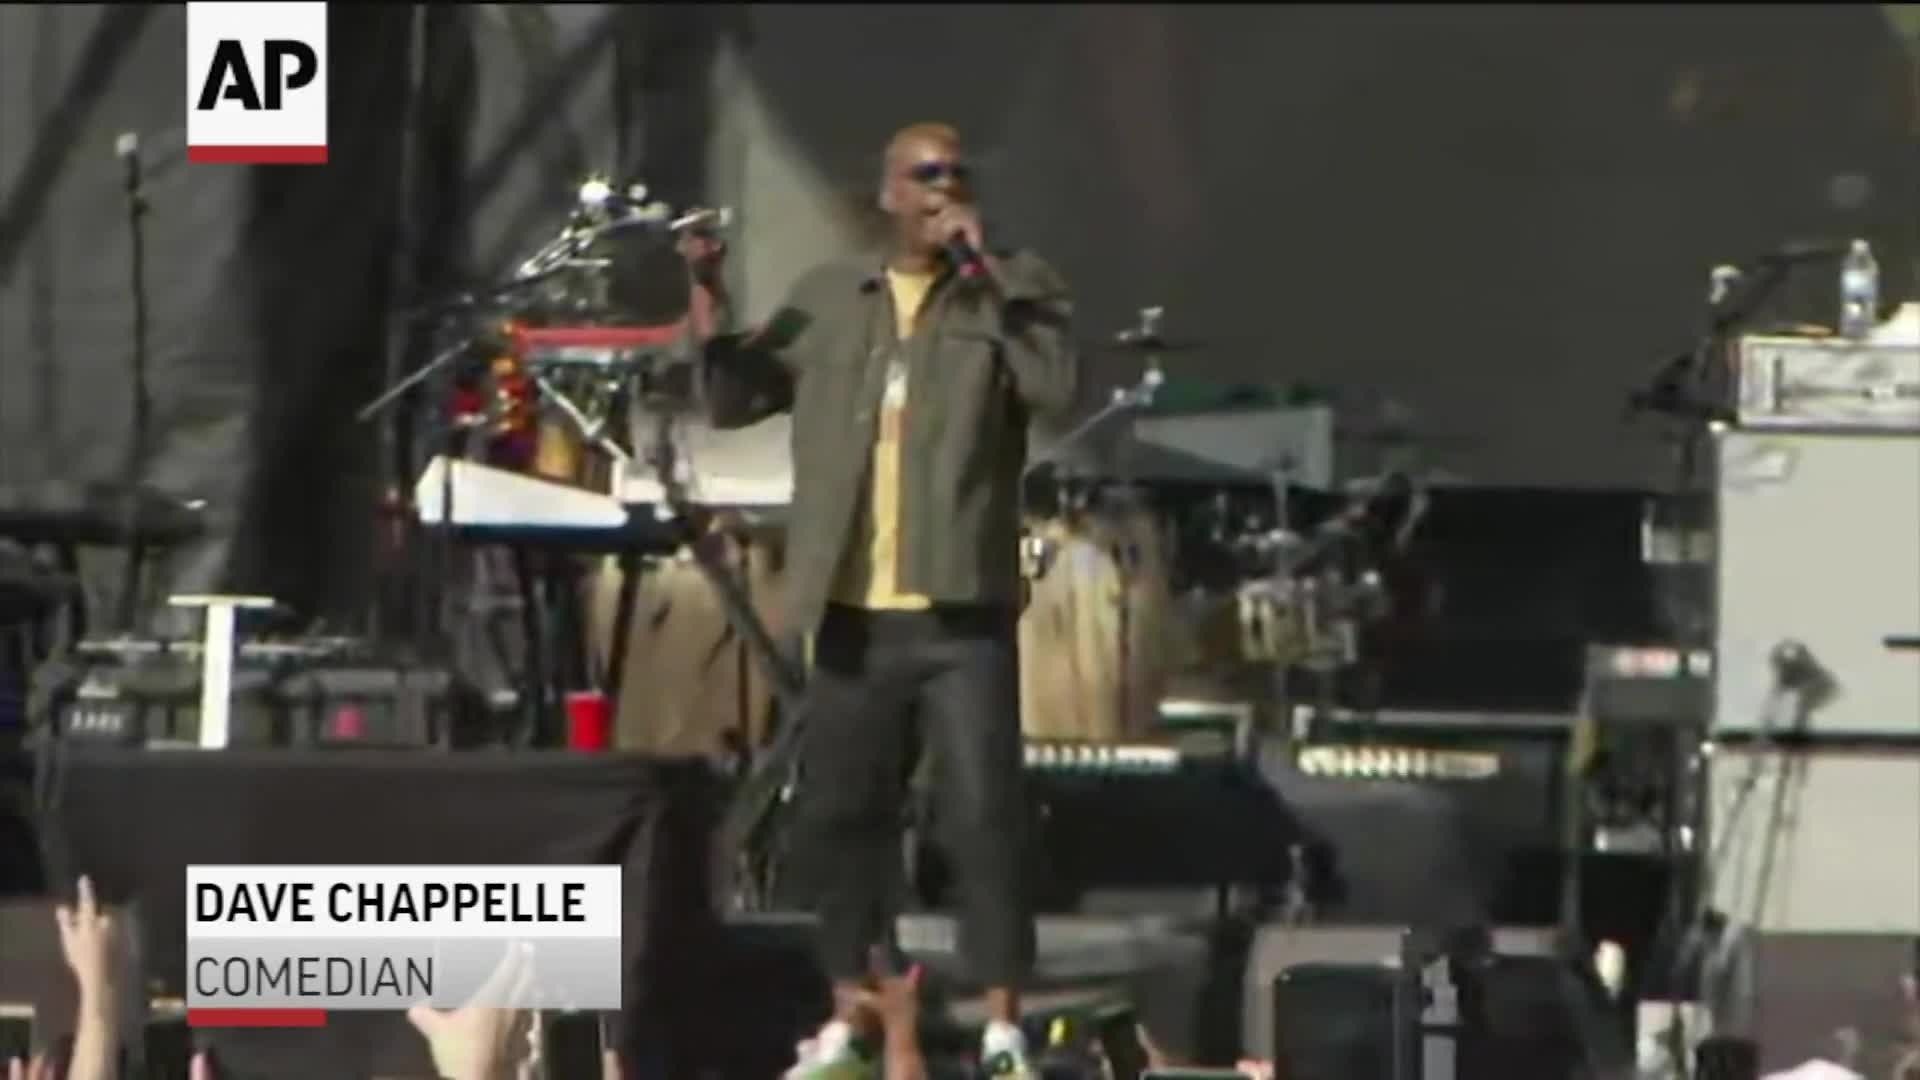 Dave Chappelle hosts concert to honor Ohio shooting victims